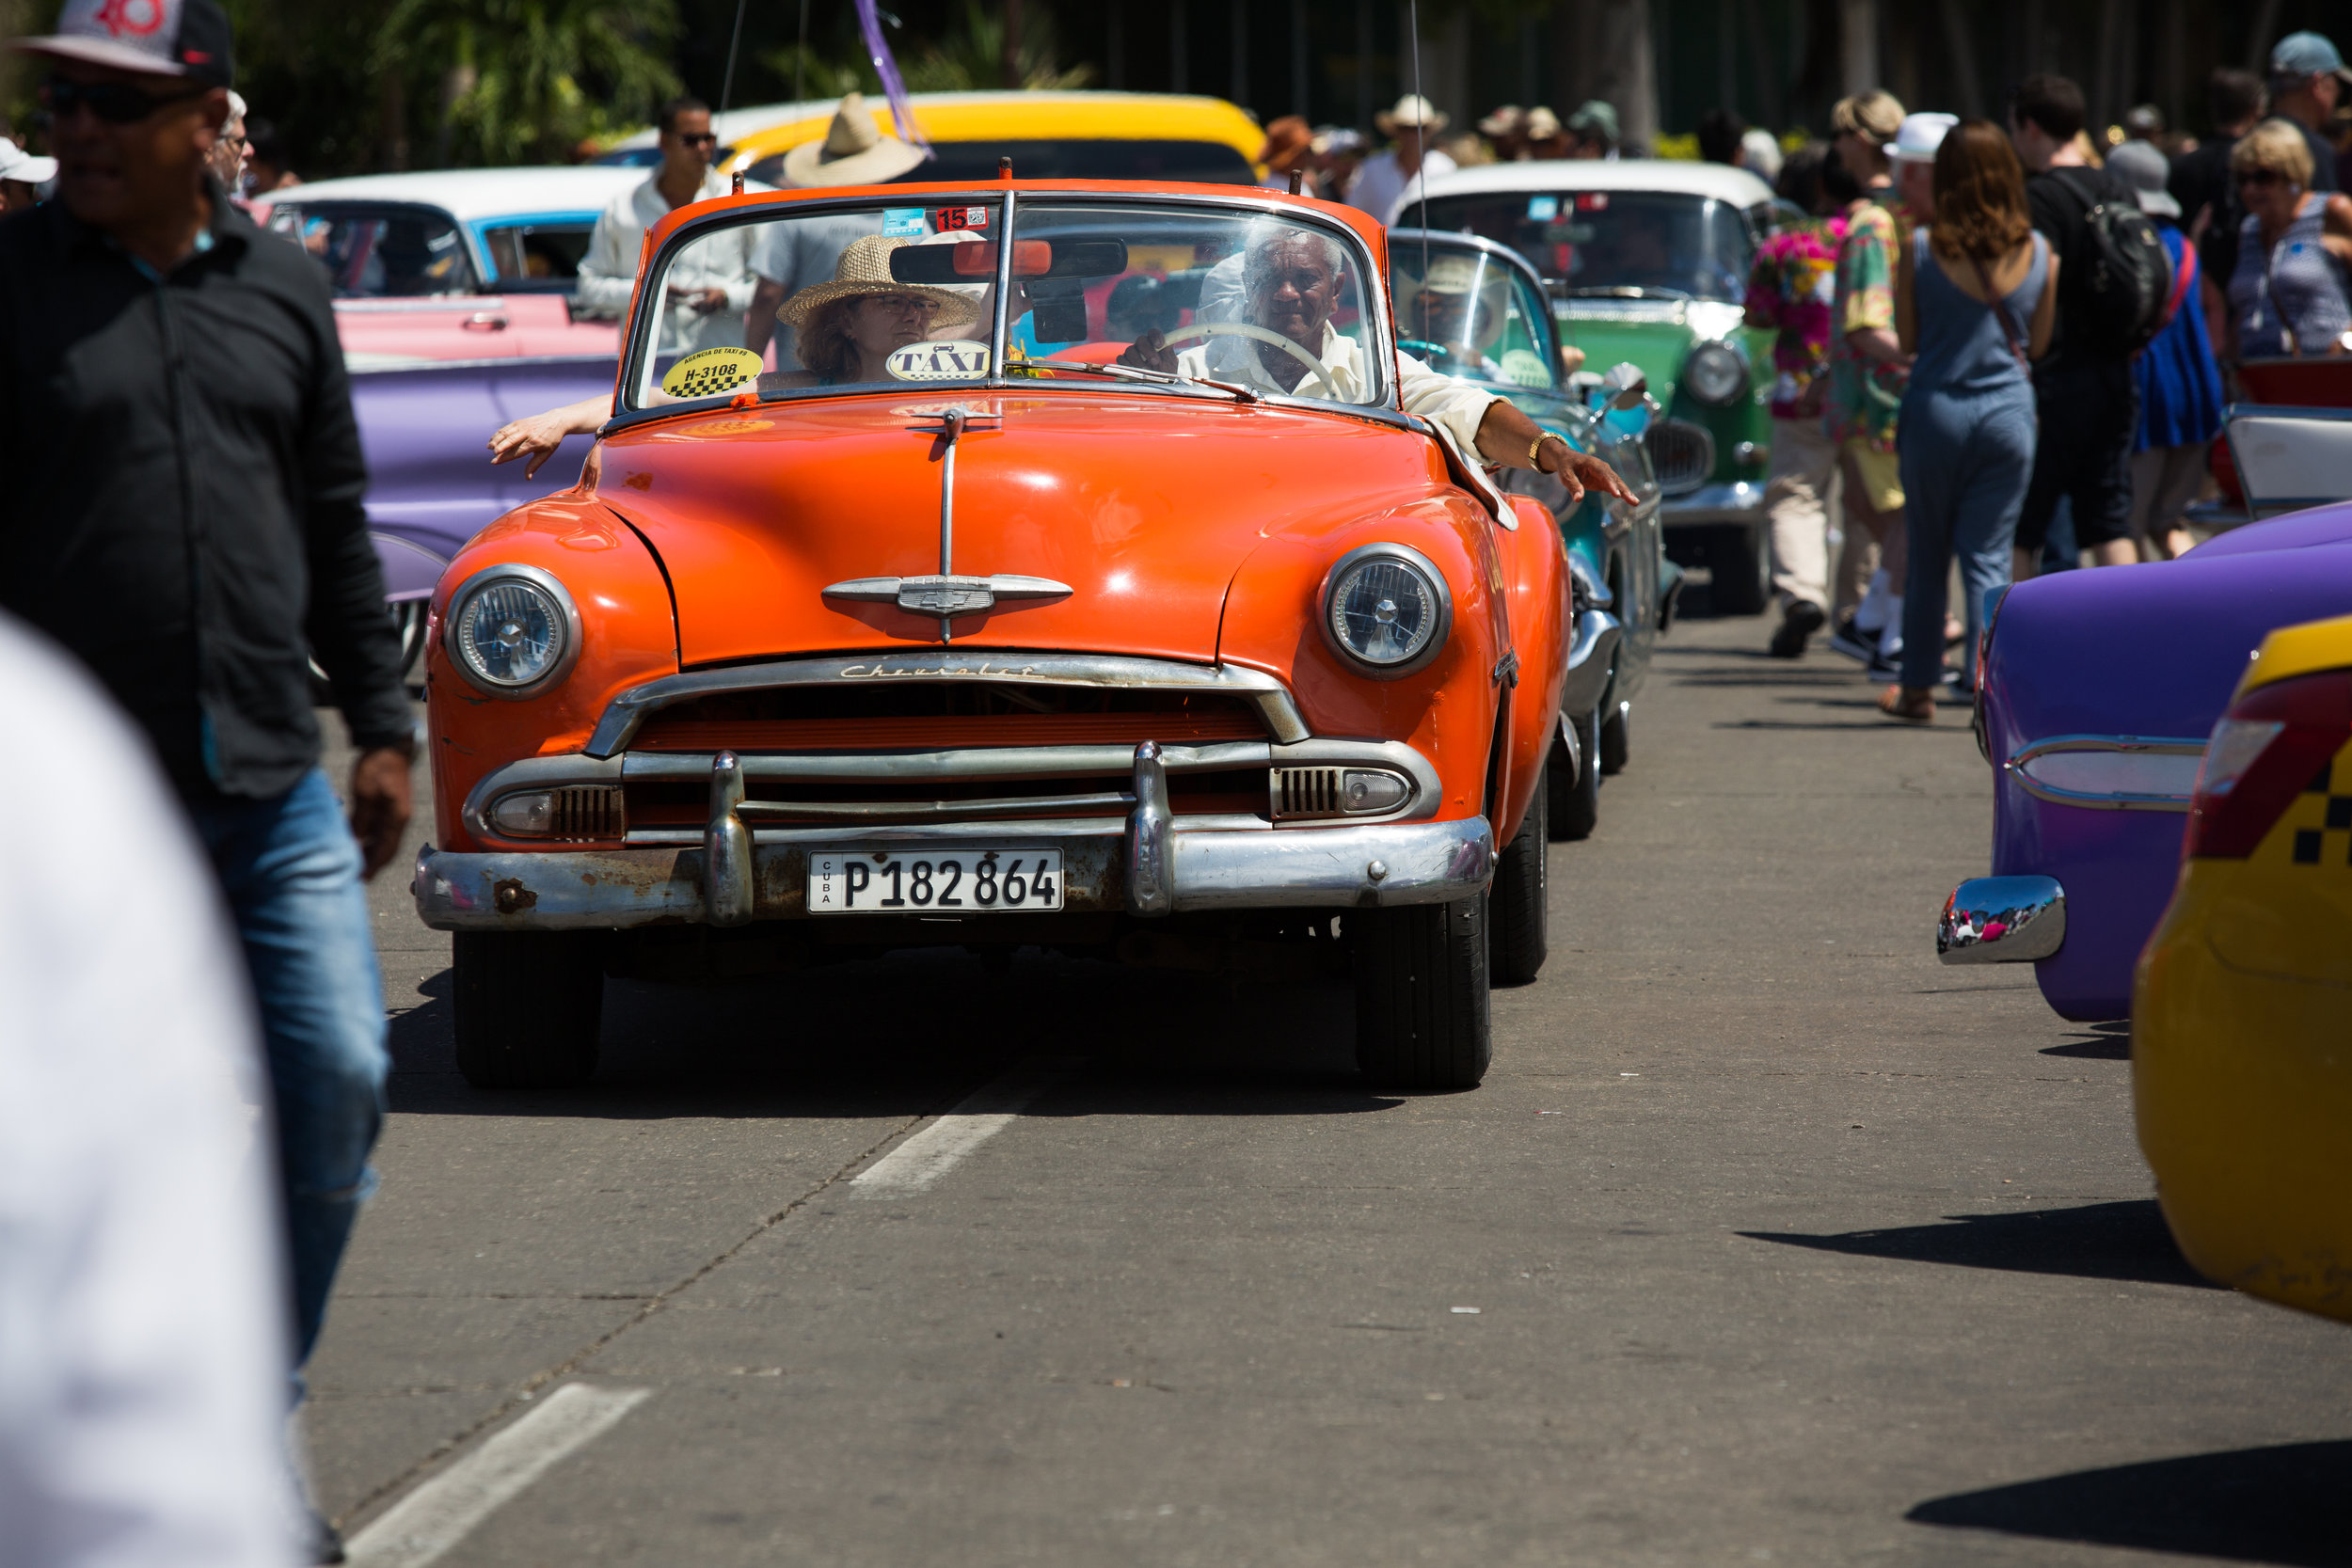 Cars gather regularly in the square, and take a break while tourists of all walks admire the classics.